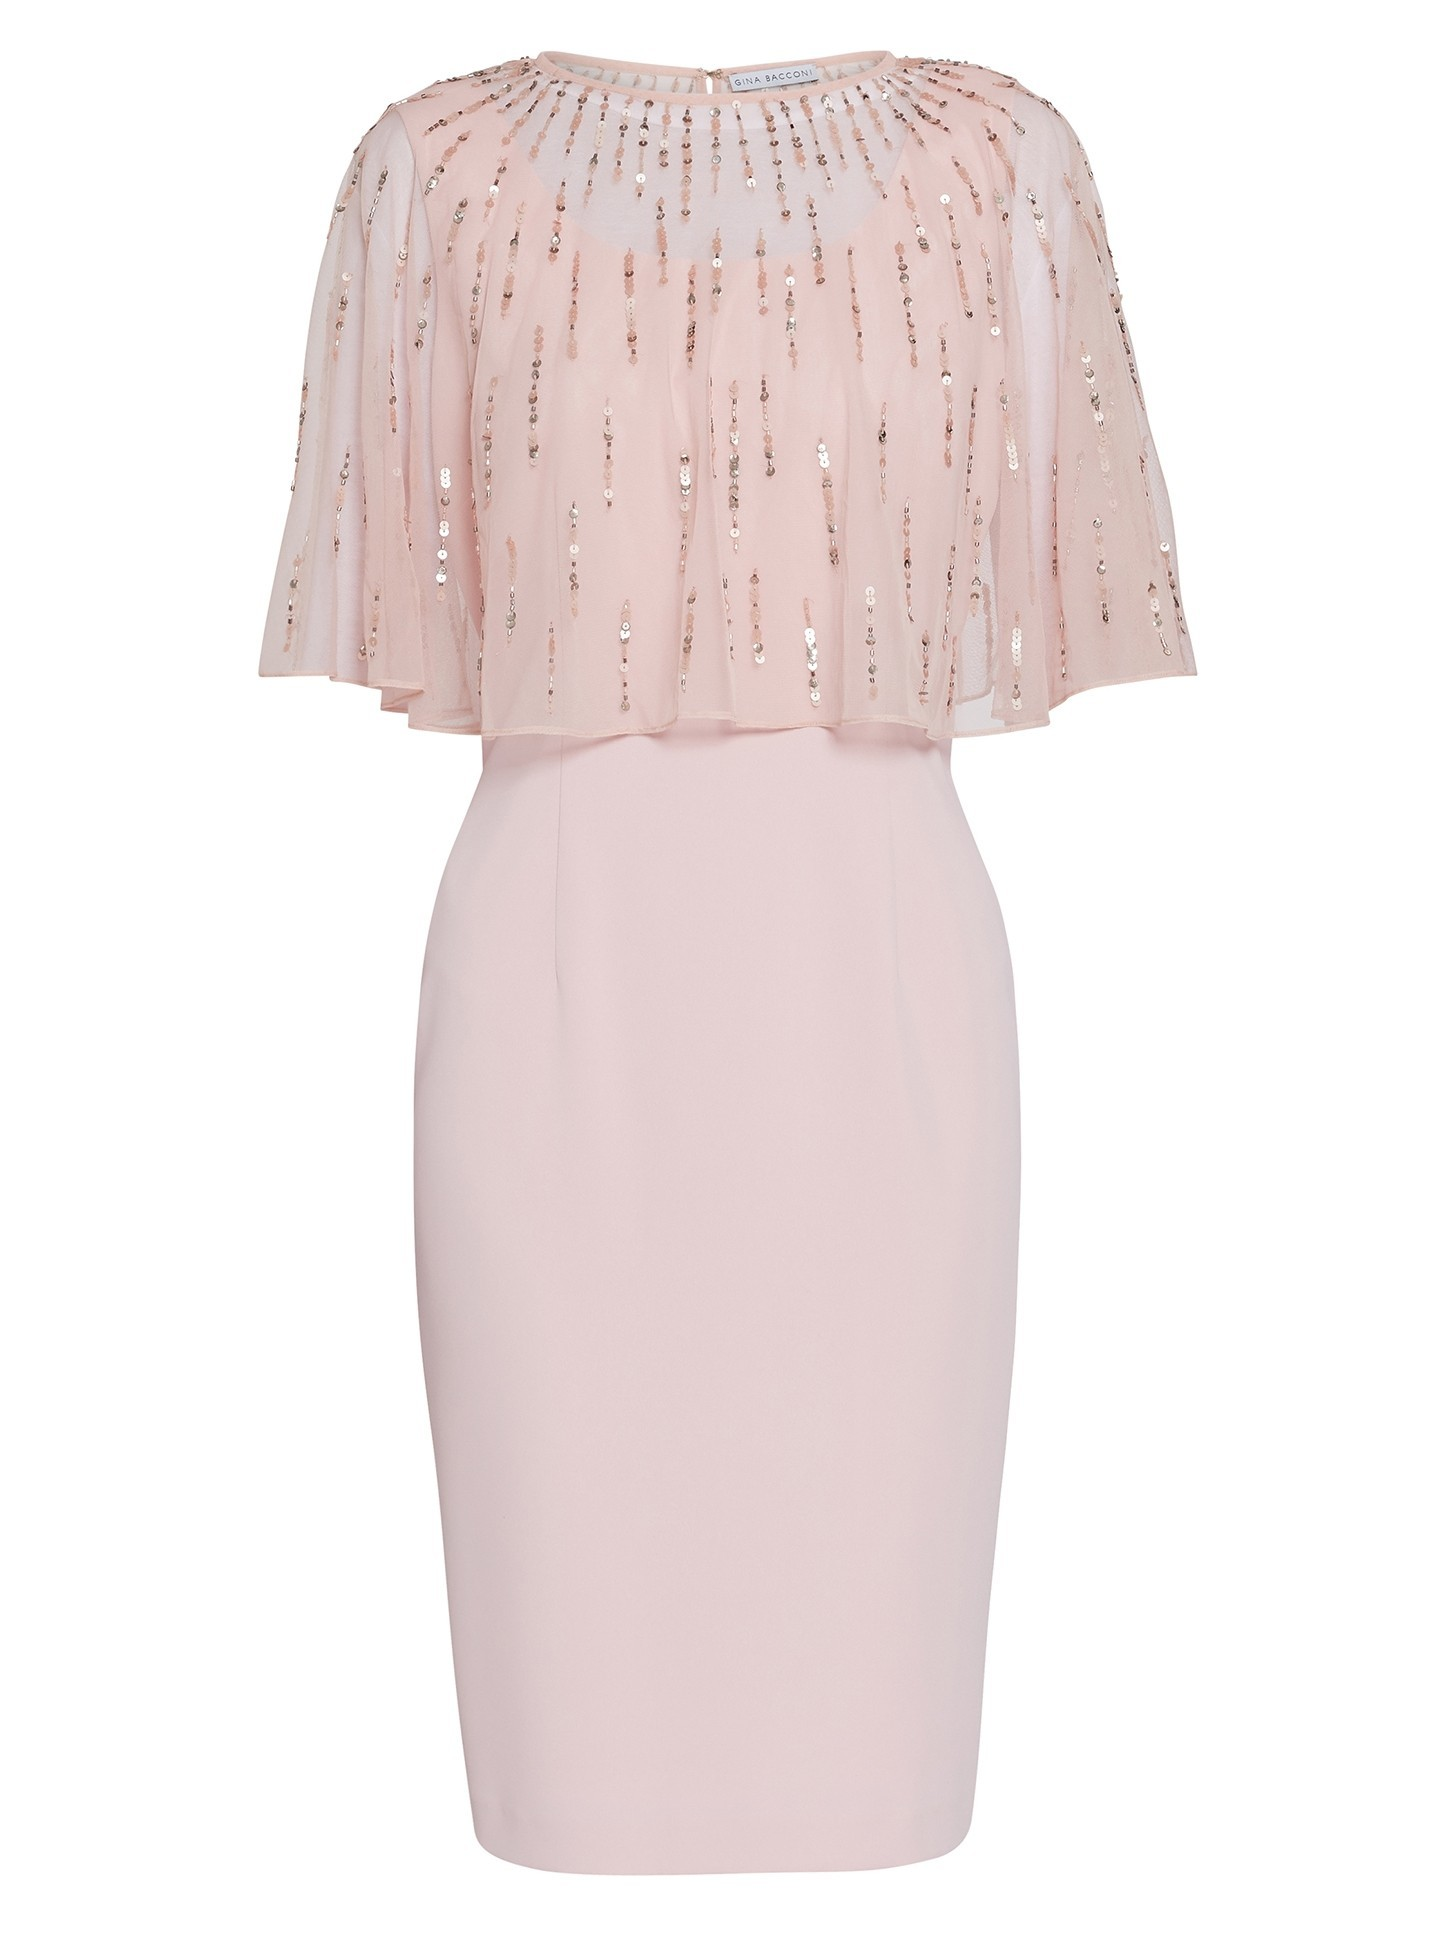 Roena Dress with Beaded Overcape Pink